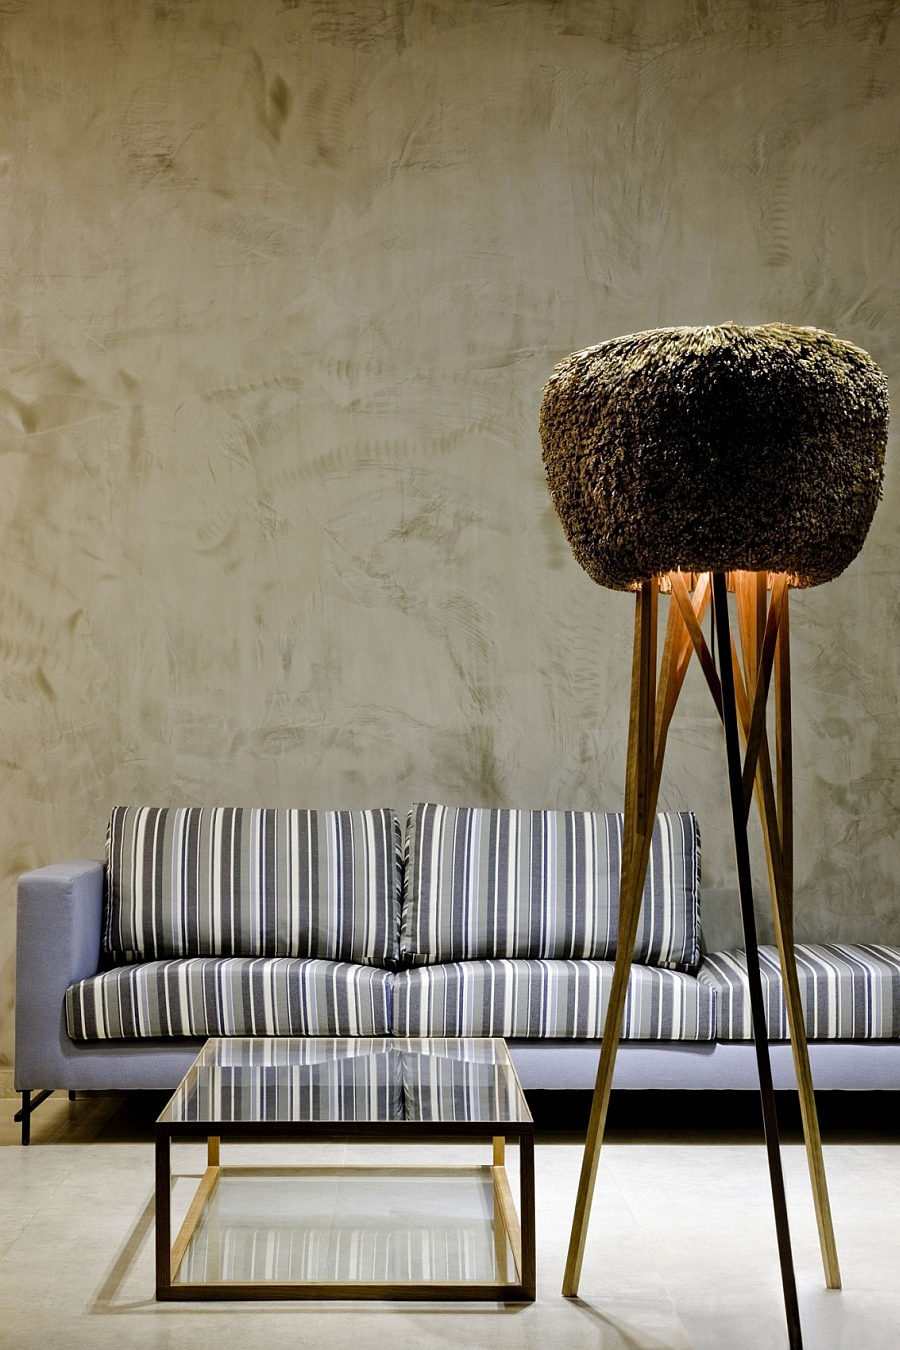 Floor lamp next to the couch idea